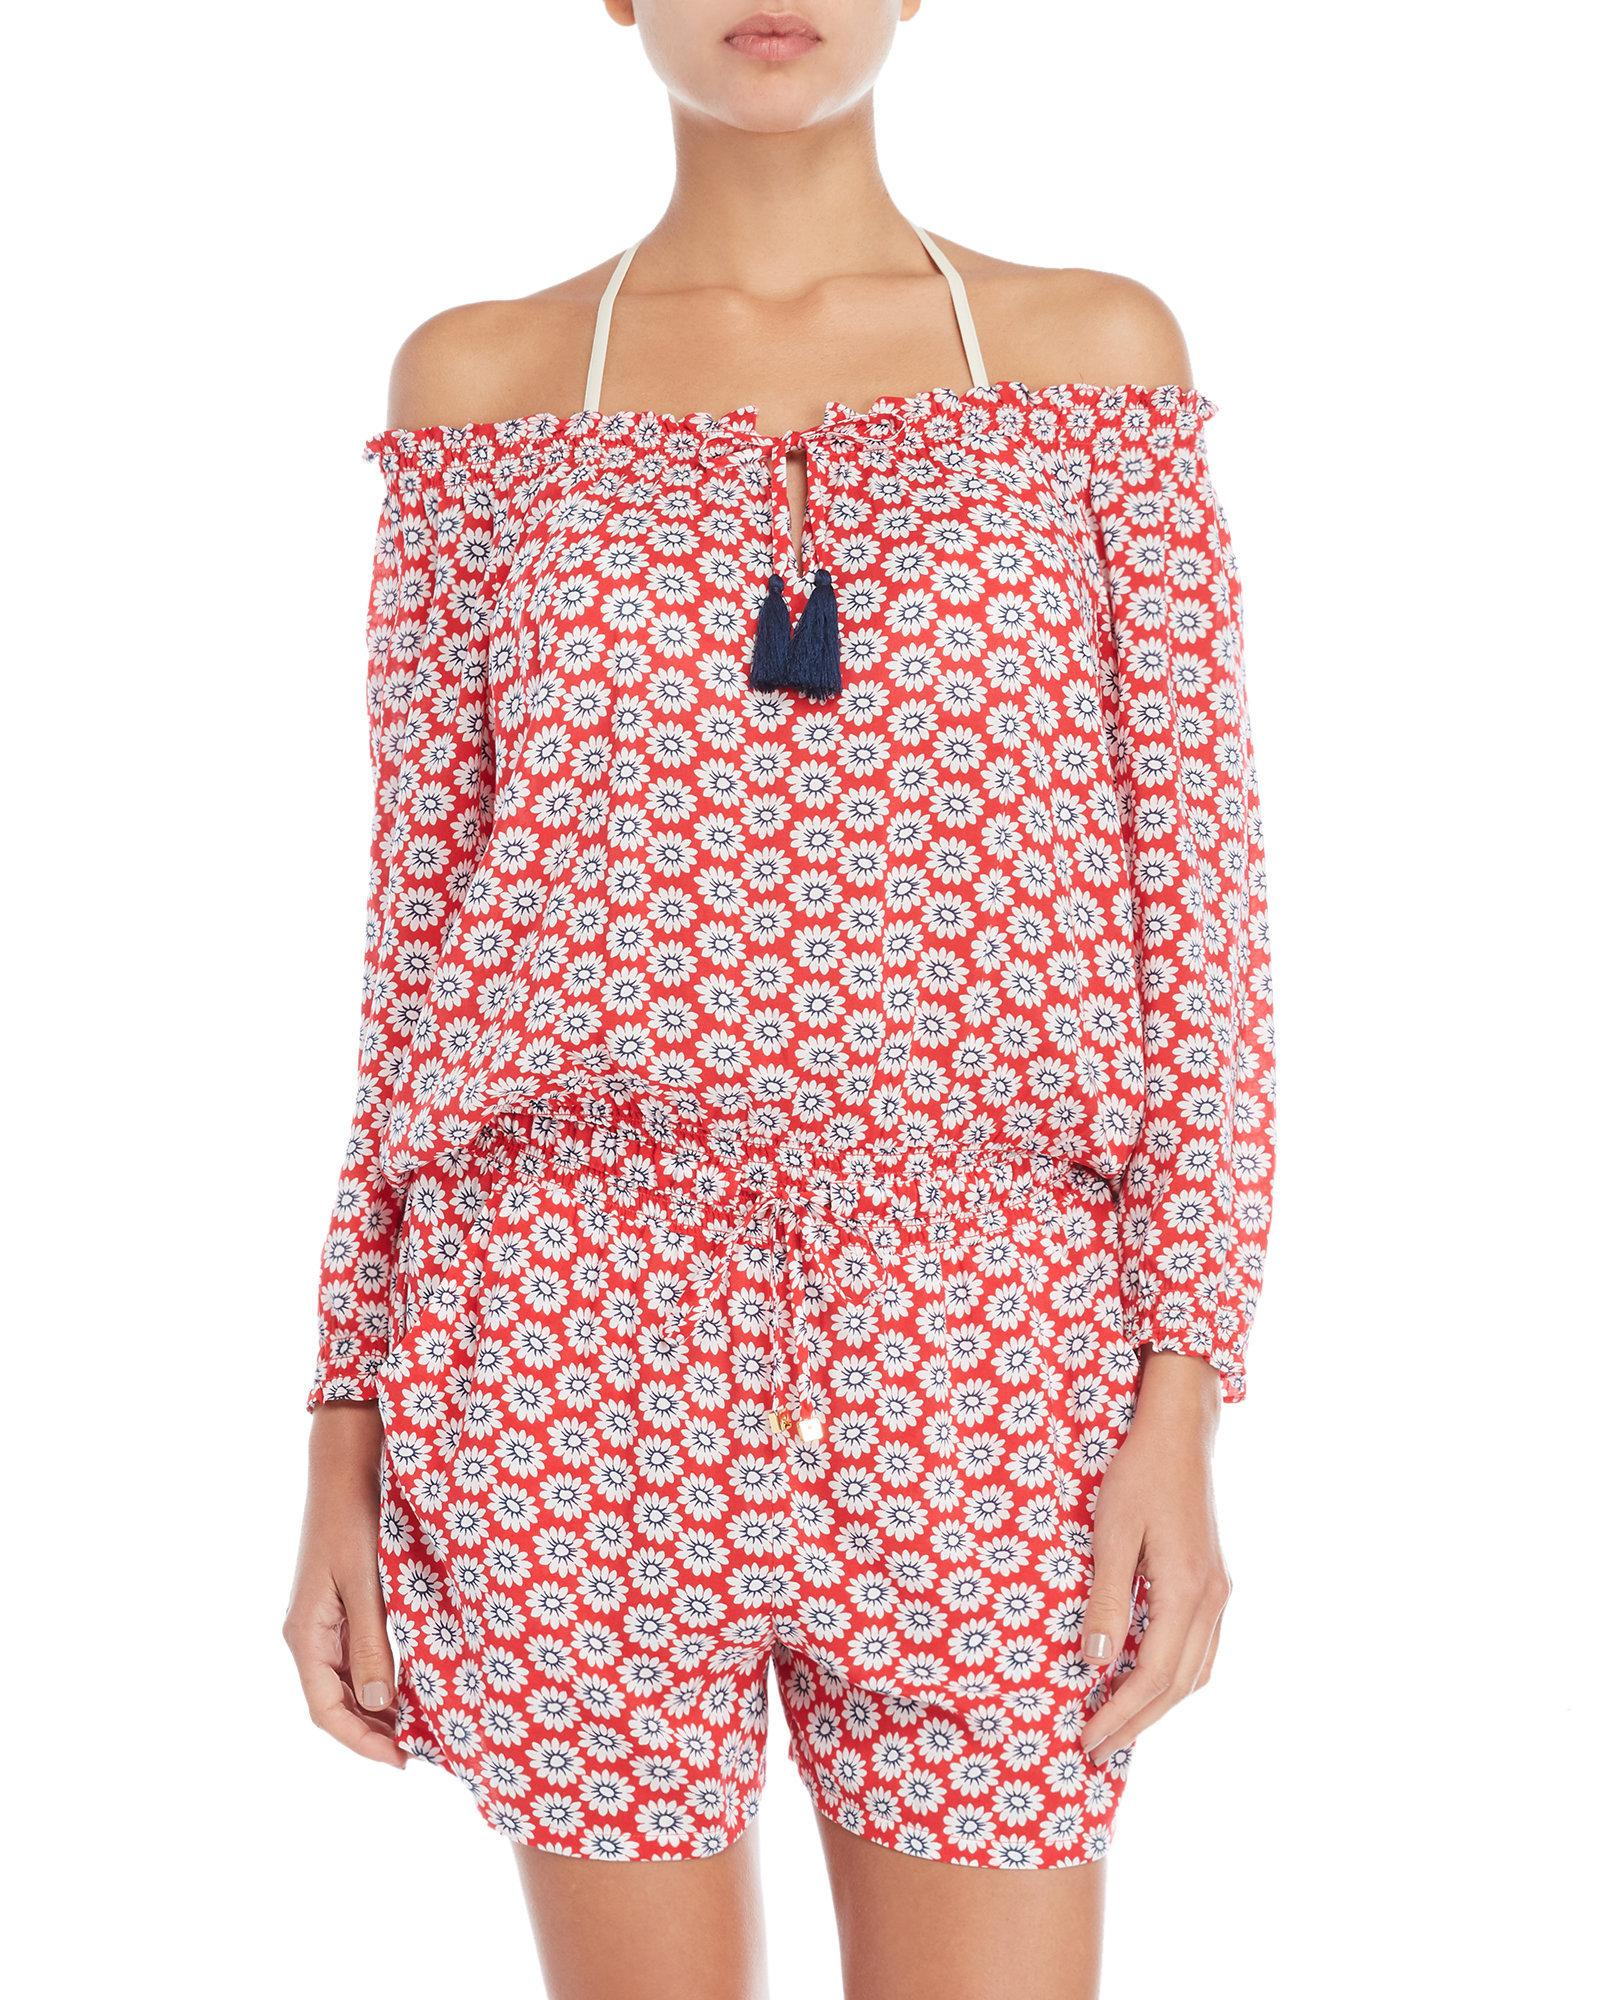 d4bff485904e Lyst - Tory Burch Prime Rose Cover-up Romper in Red